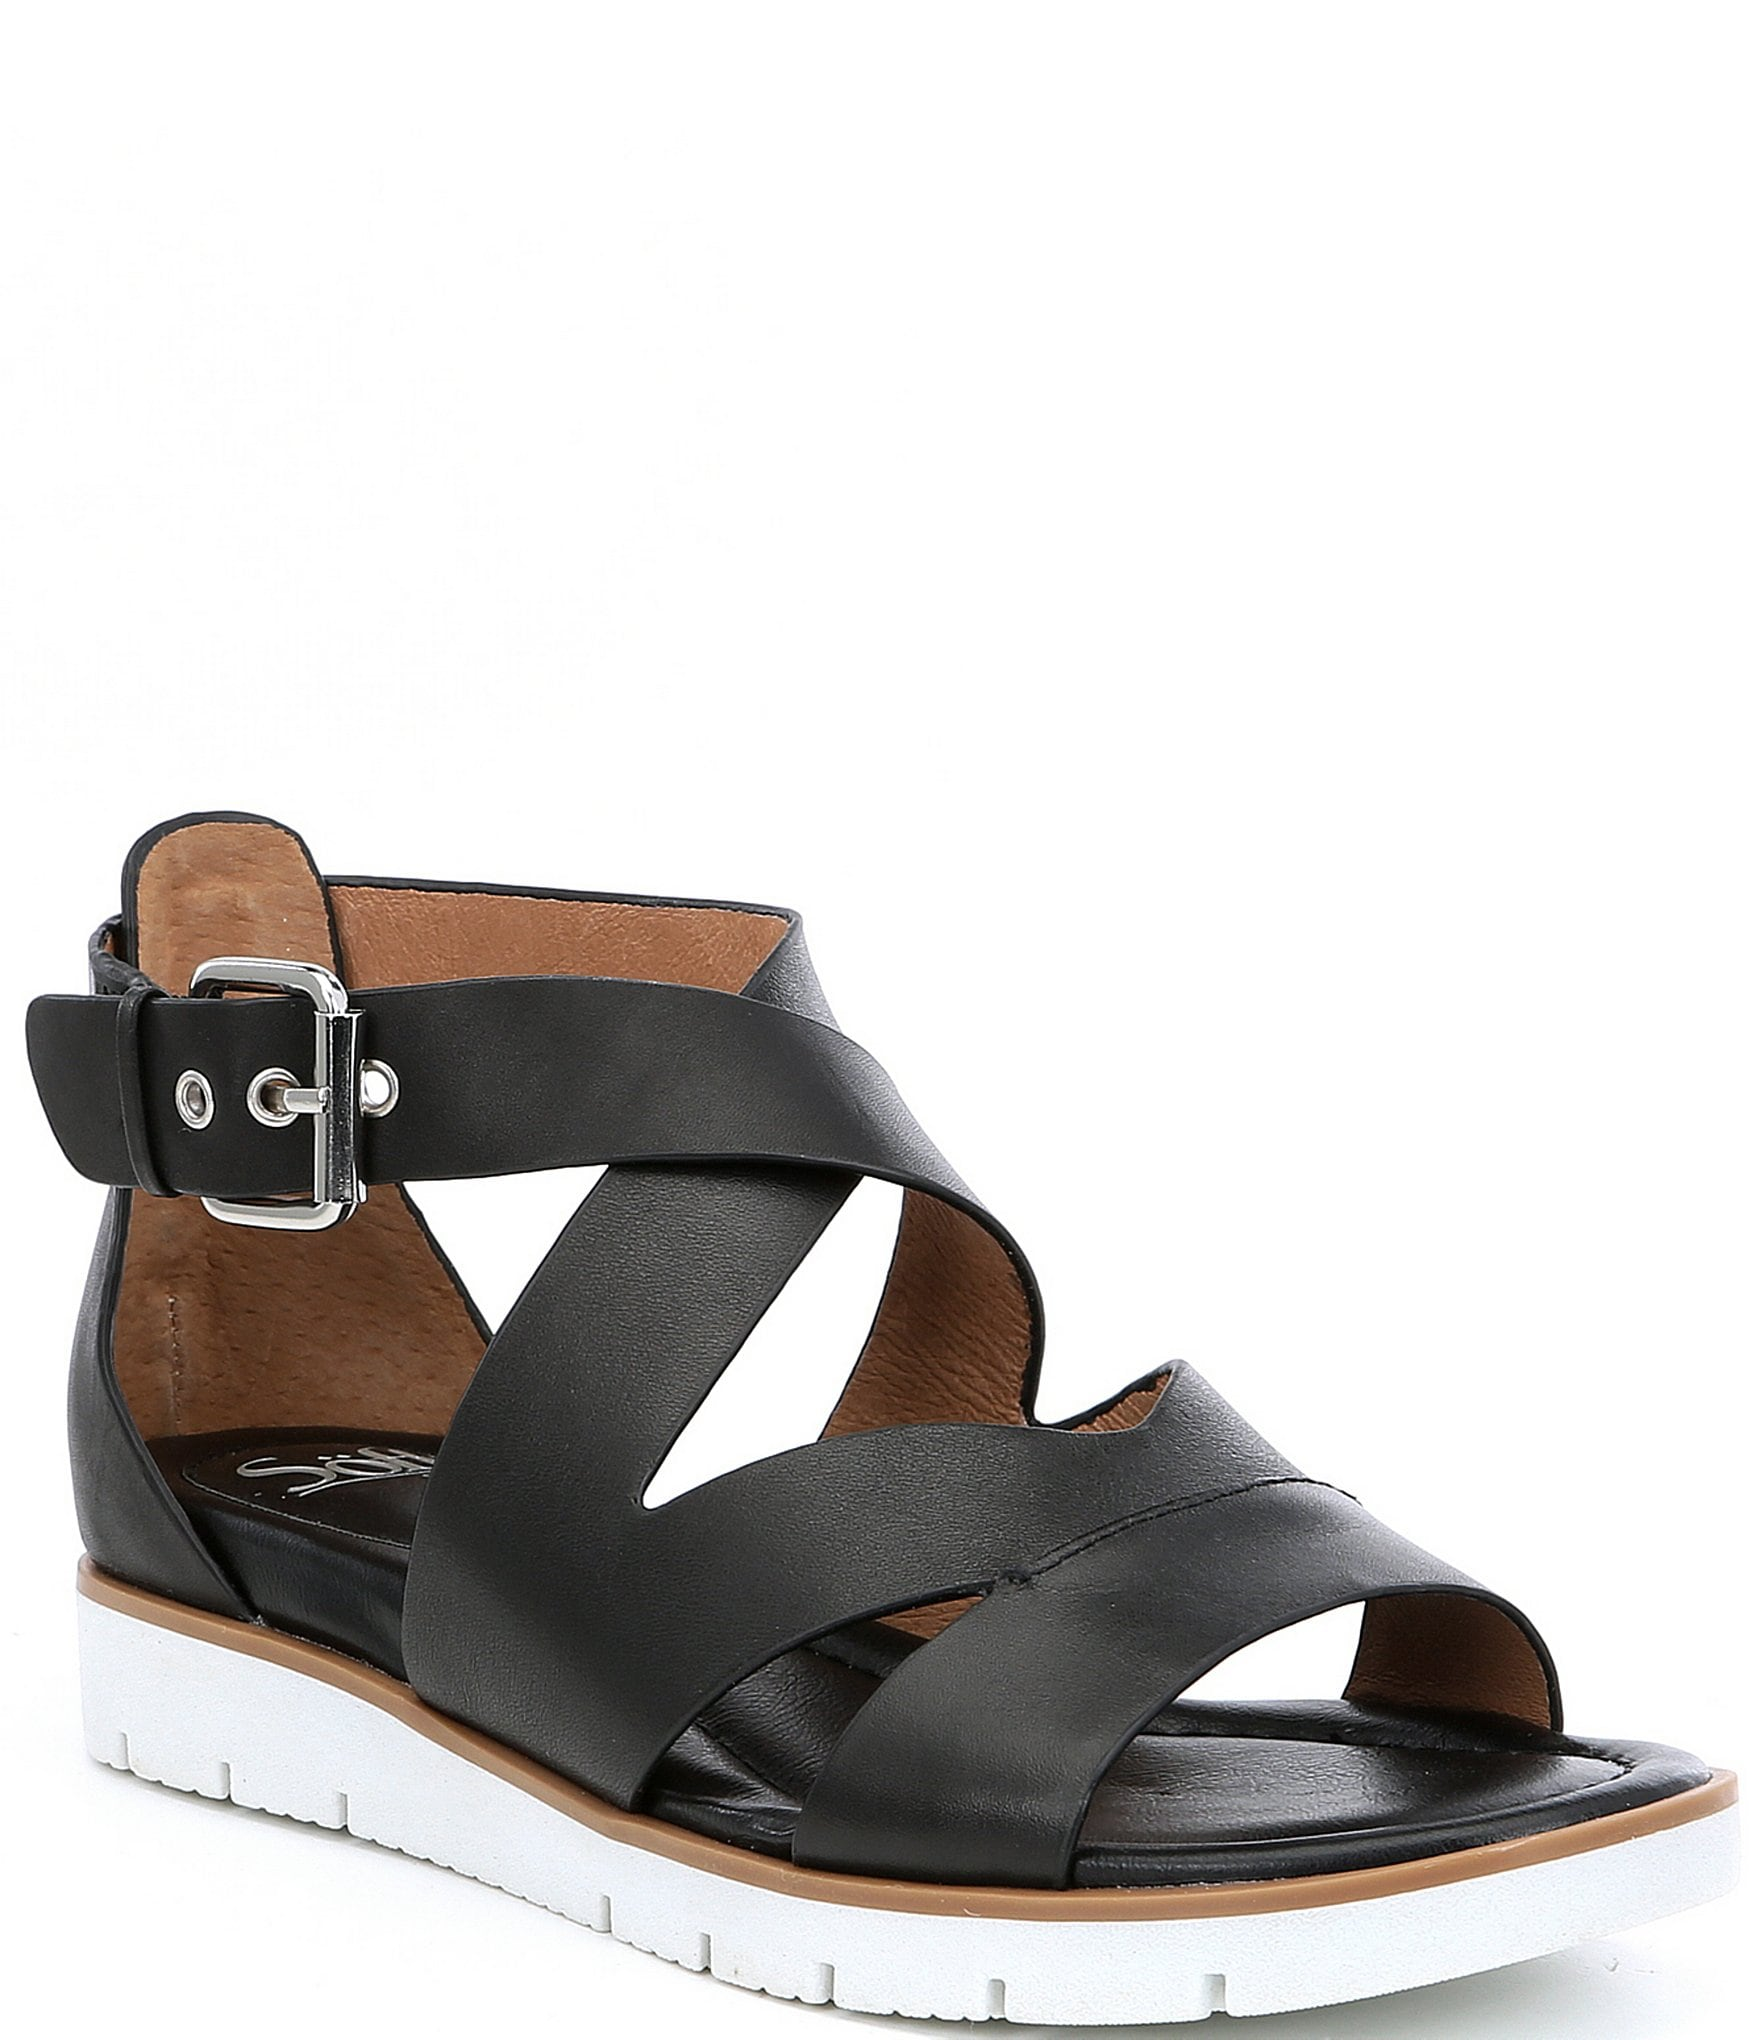 9f6fc692e Sofft Mirabelle Leather Criss Cross Sandals